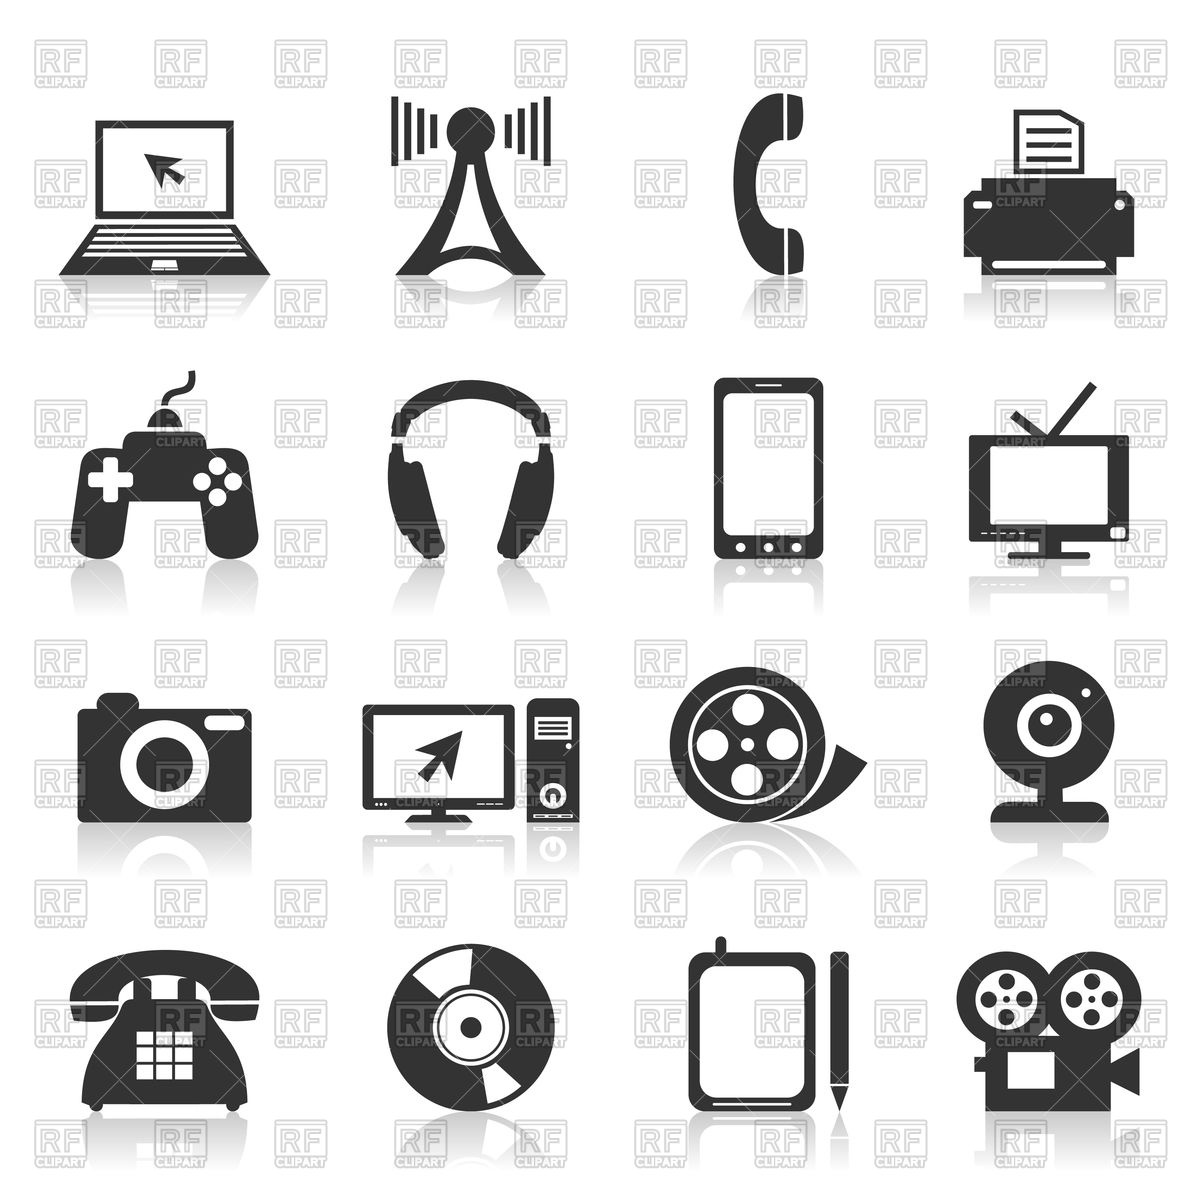 Set of electronics icons Vector Image #82703.